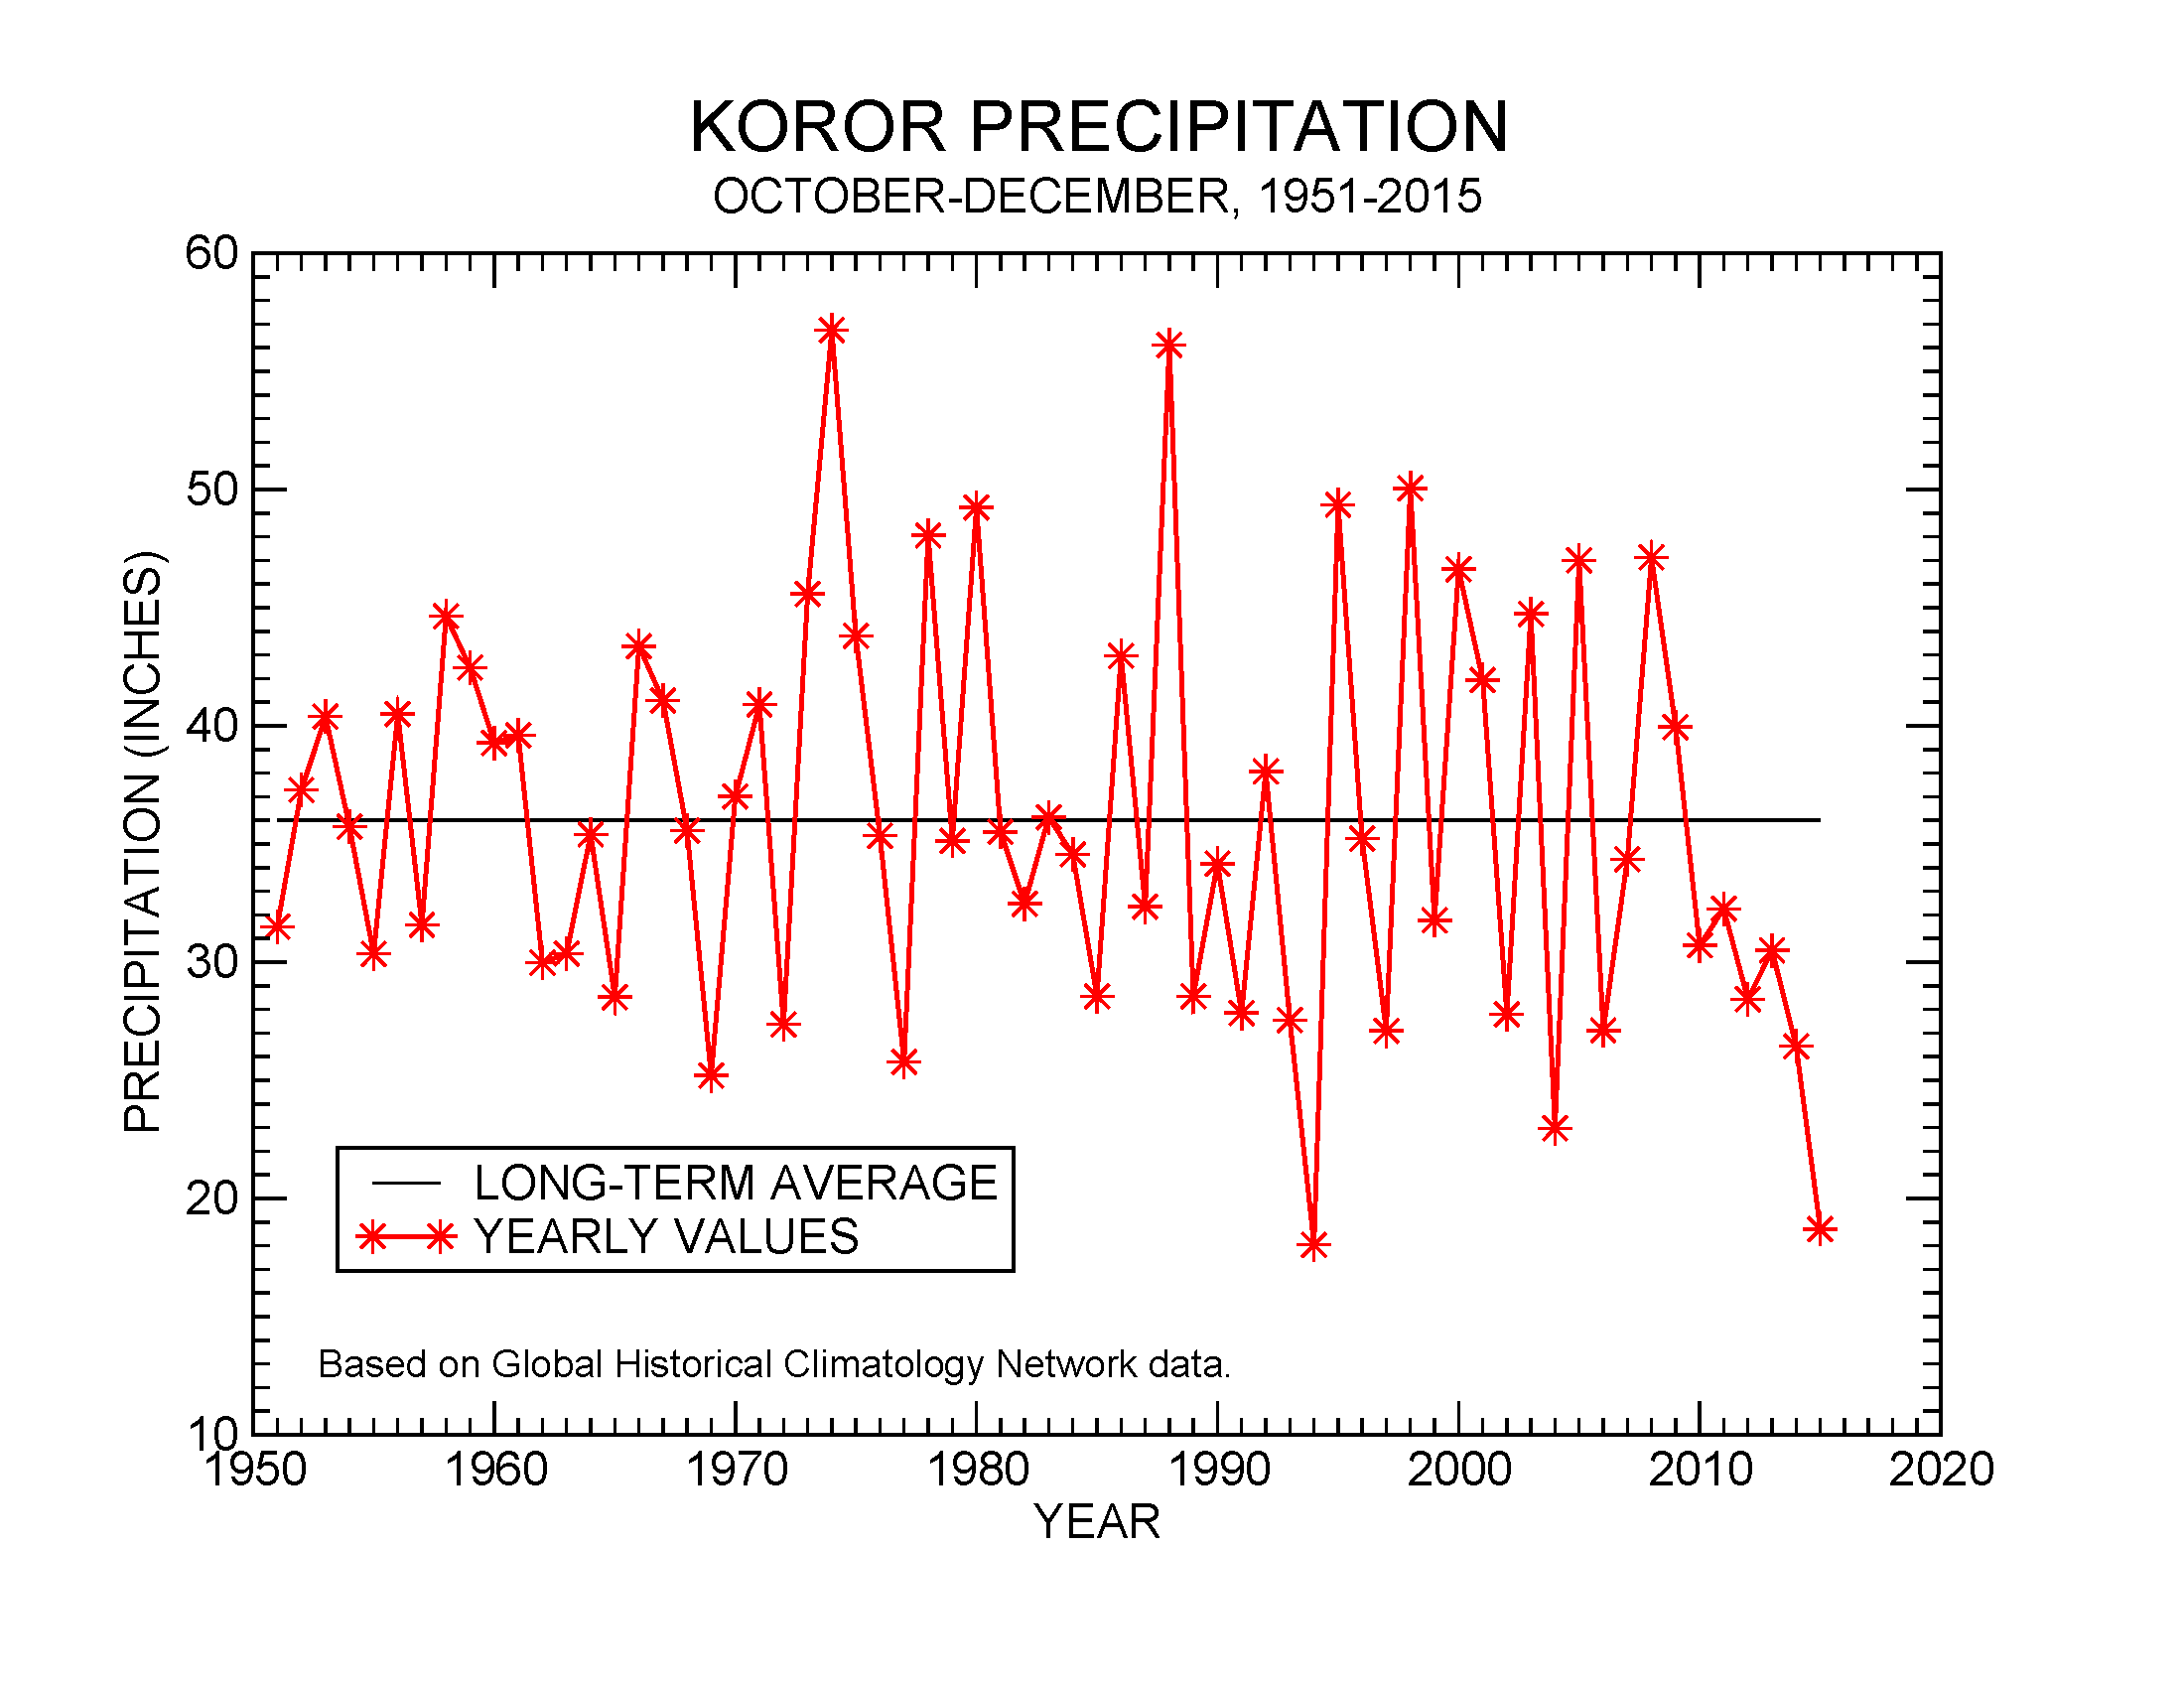 Precipitation at Koror, October-December, 1951-2015